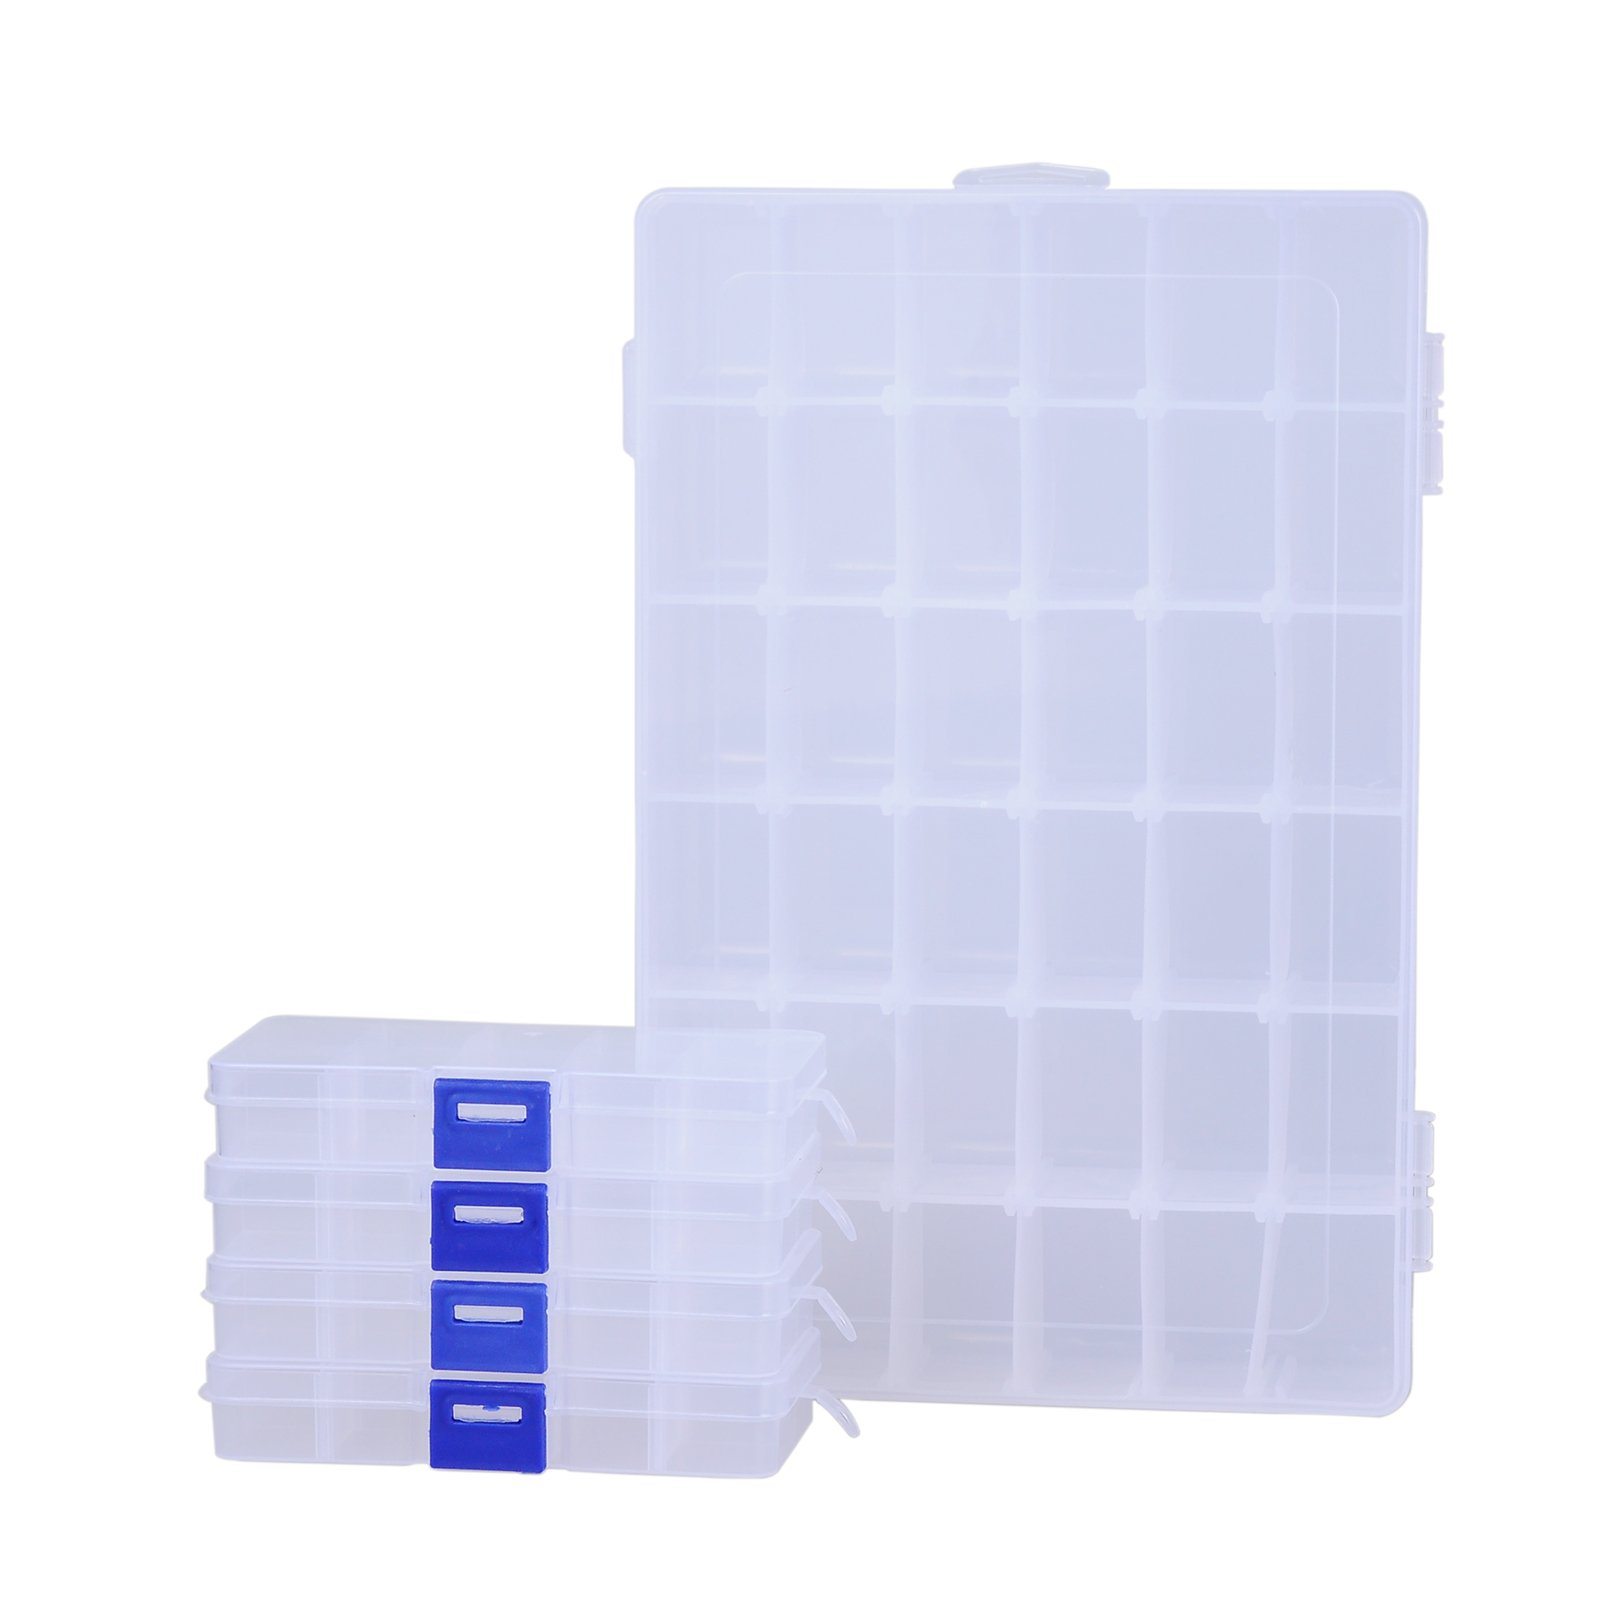 ECROCY Pack of 5 Plastic Storage Box with Adjustable Dividers for Beads, Jewelry,Tools and Fishing Lures(1pc Organizer Box with 36 Grids & 4pcs Box with 10 Grids)